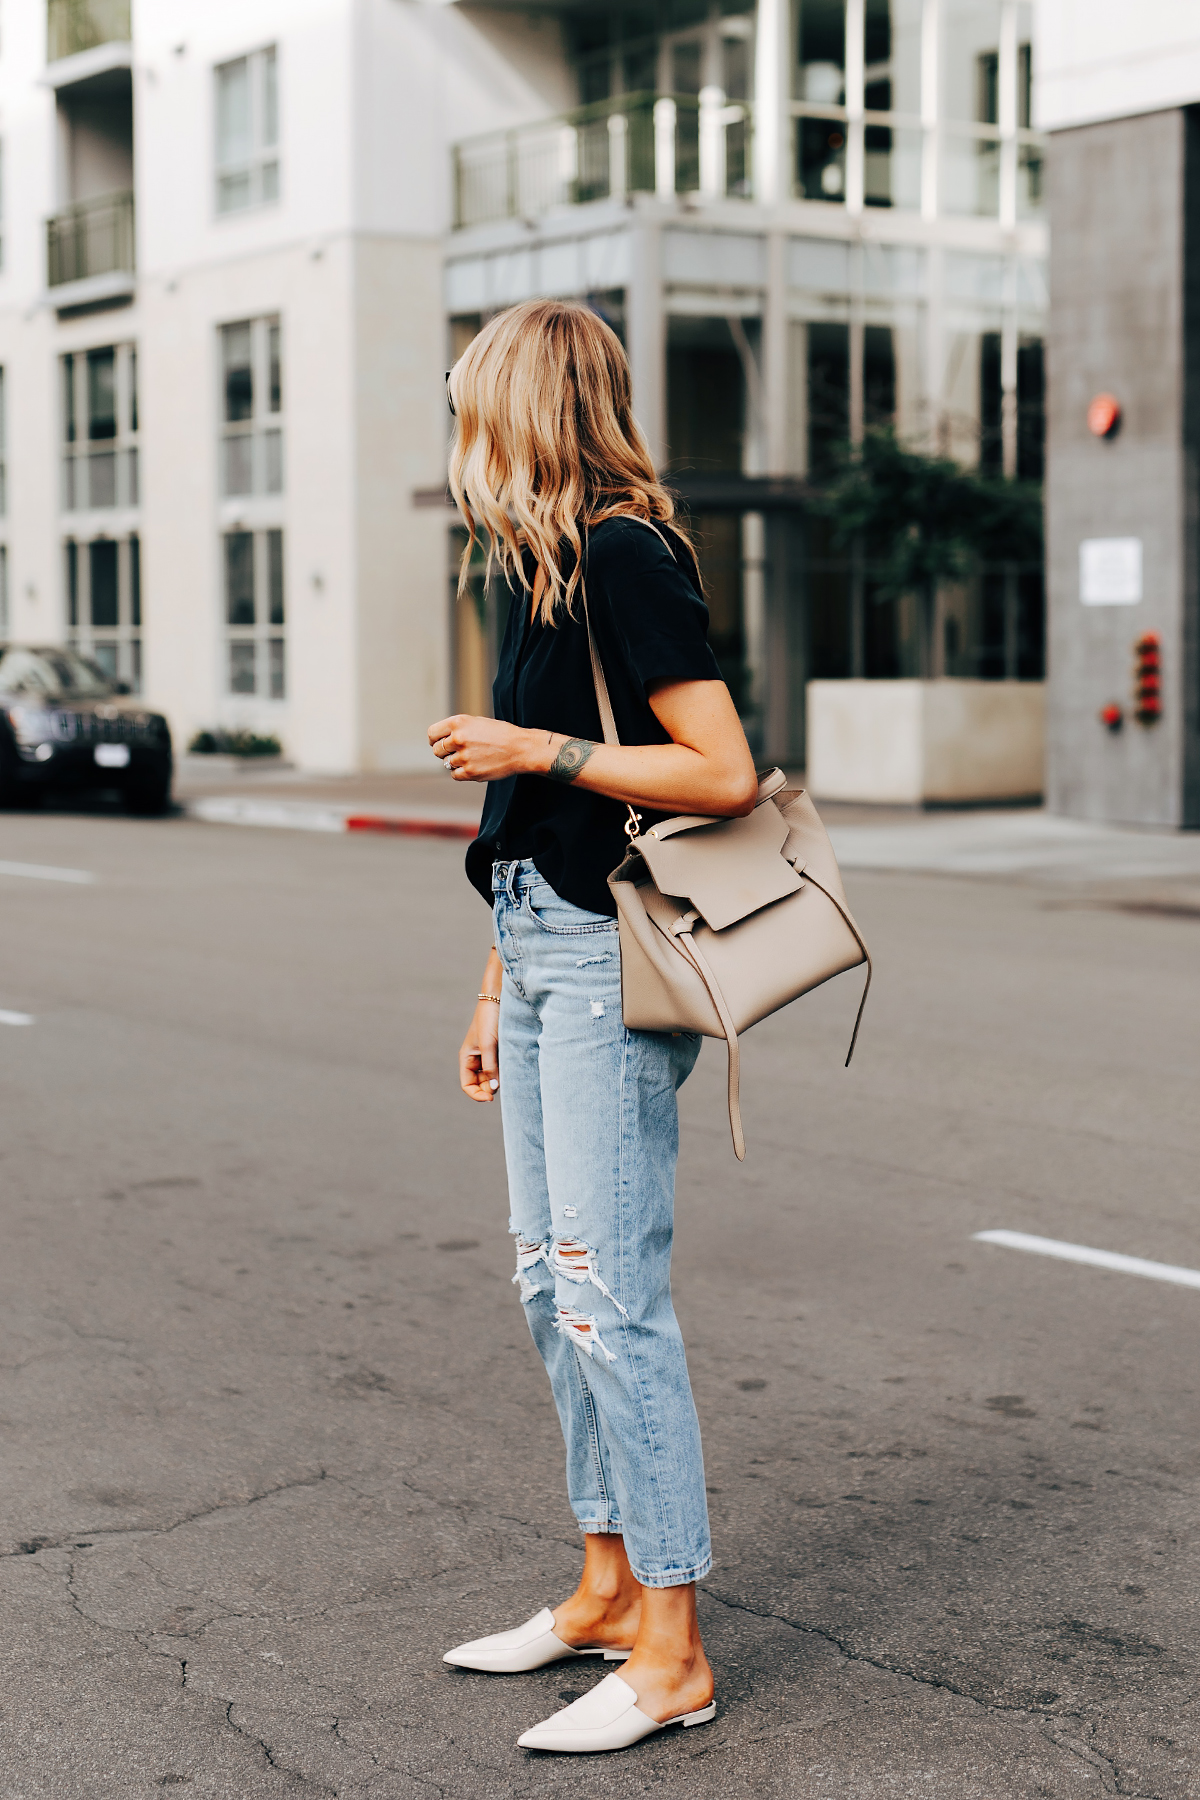 Fashion Jackson Wearing Everlane Short Sleeve Black Top Everlane Ripped Boyfriend Jeans Everlane White Mules Celine Belt Bag